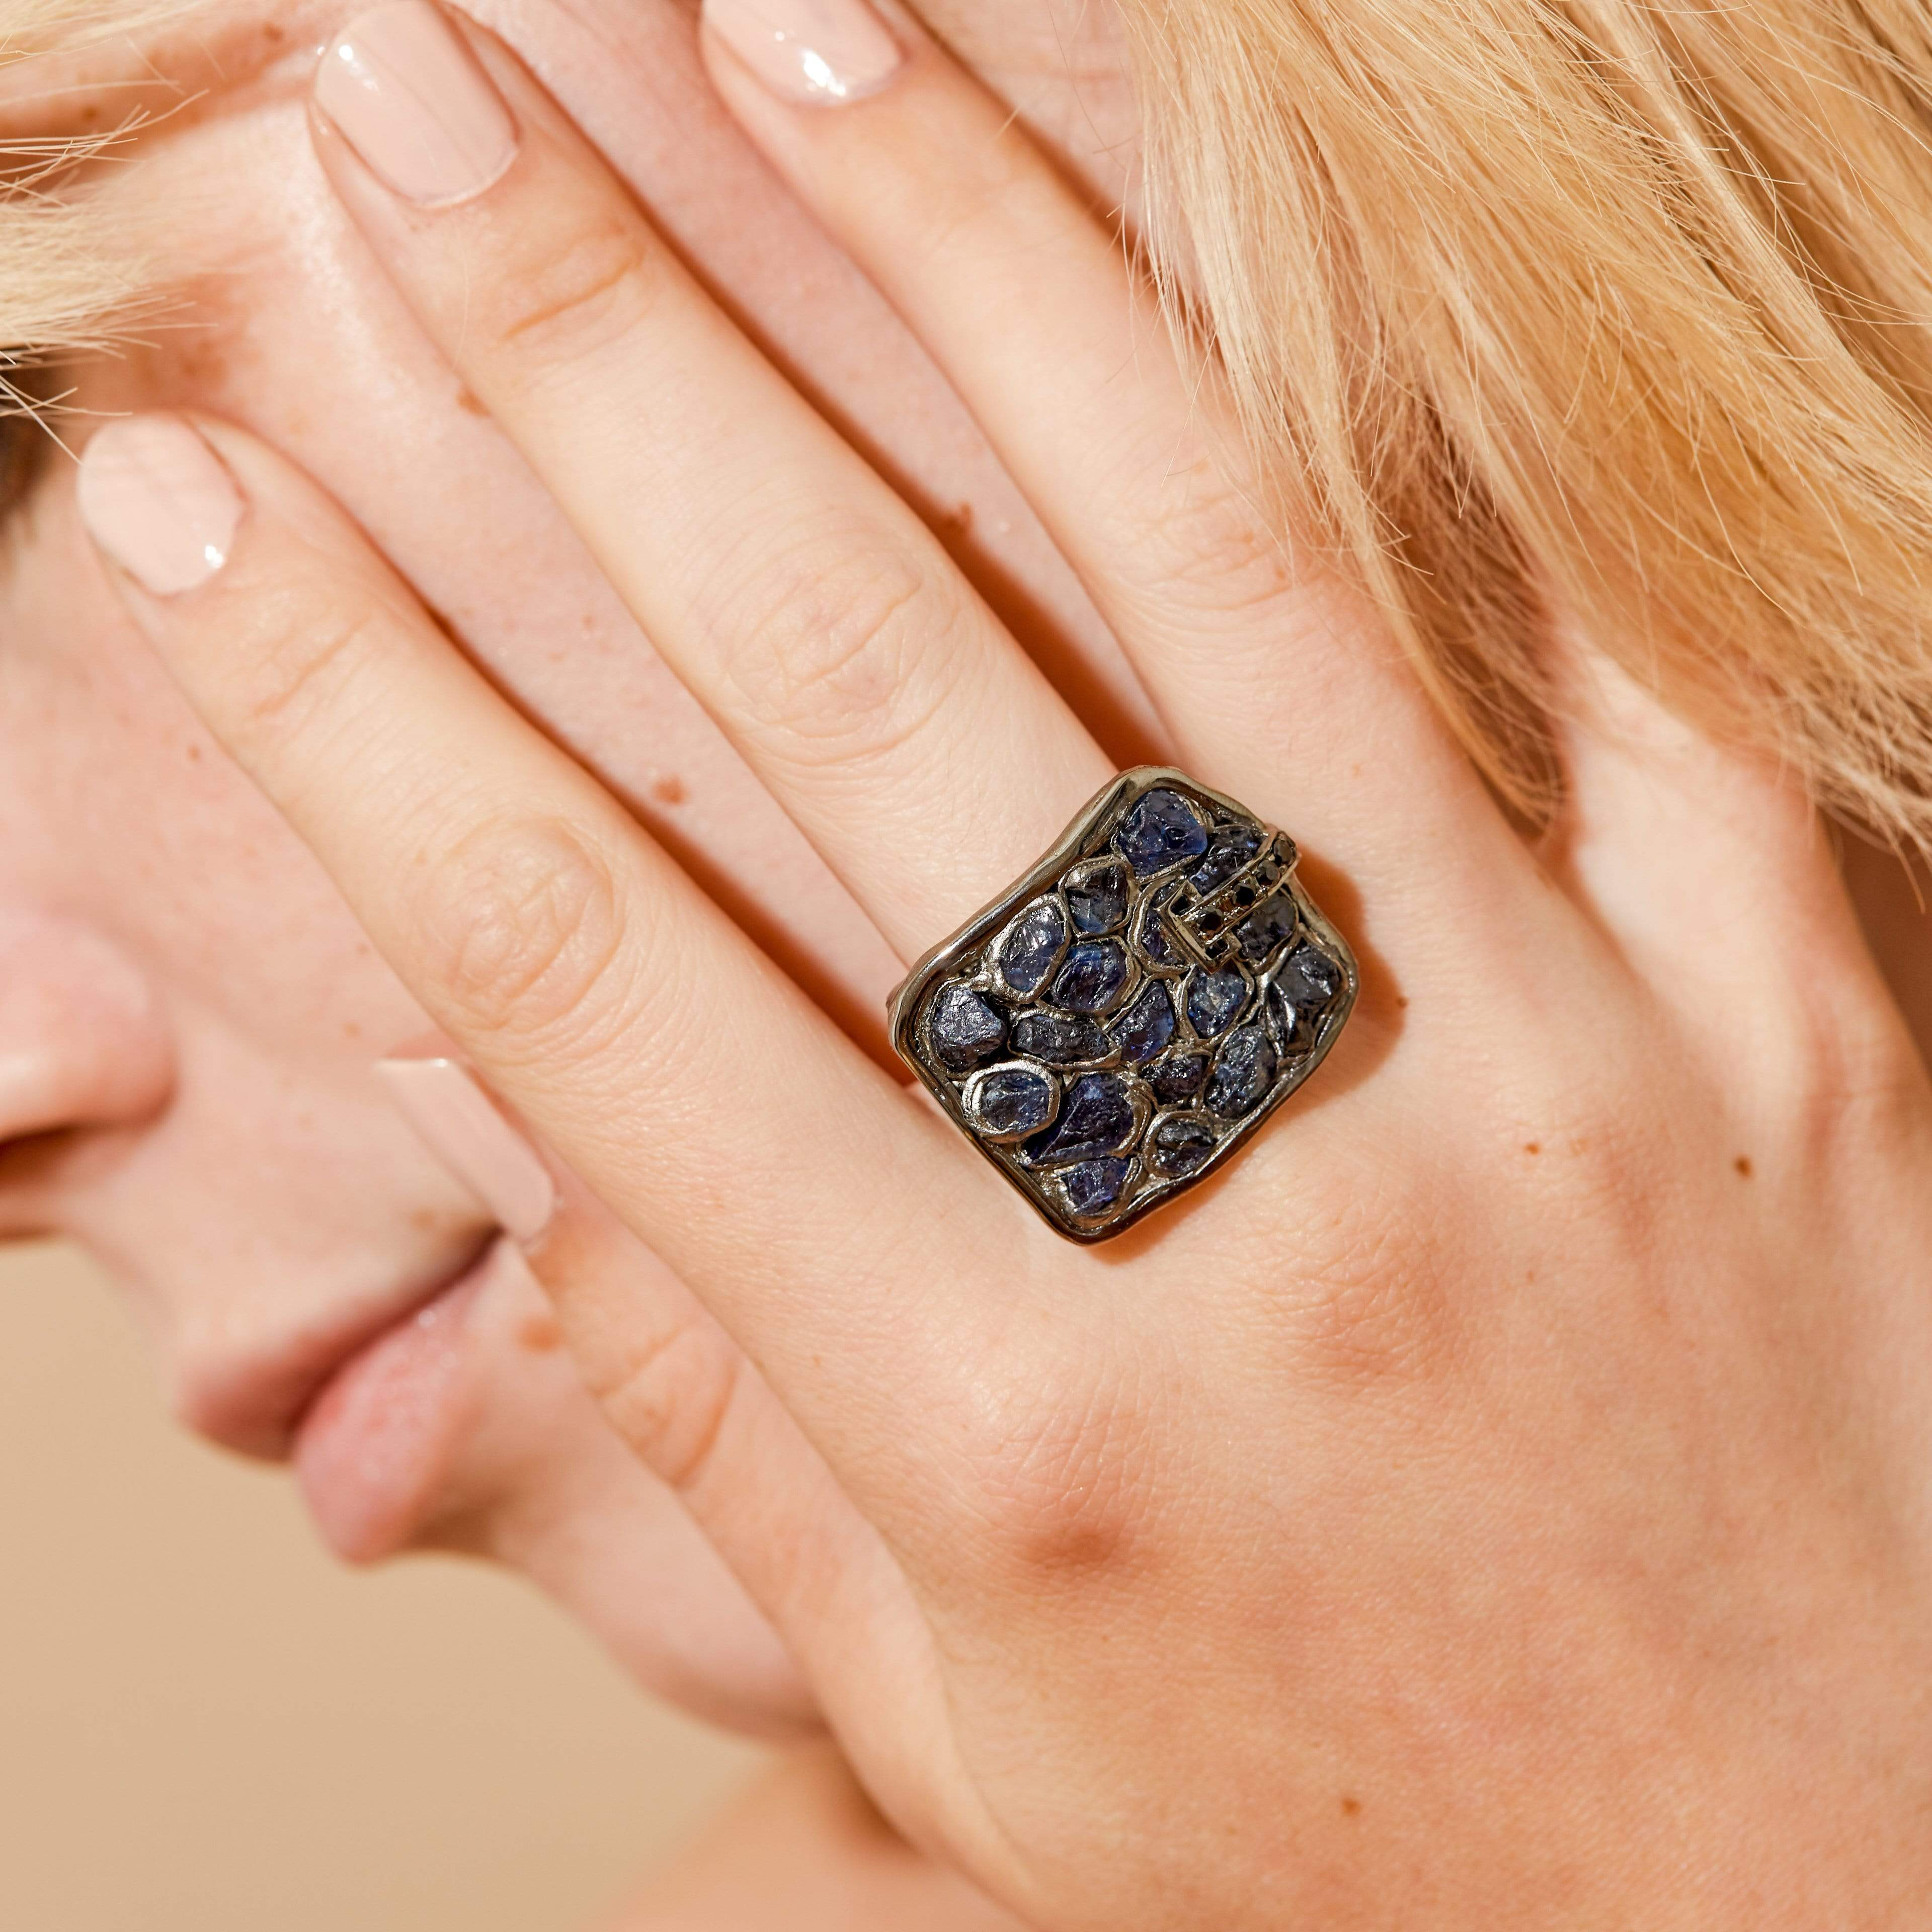 Neith Ring, gray, Handmade, Rhodium, Sapphire, Spinel, spo-disabled, StoneColor:DeepBlue, Style:Everyday, Type:StainedGlass Ring